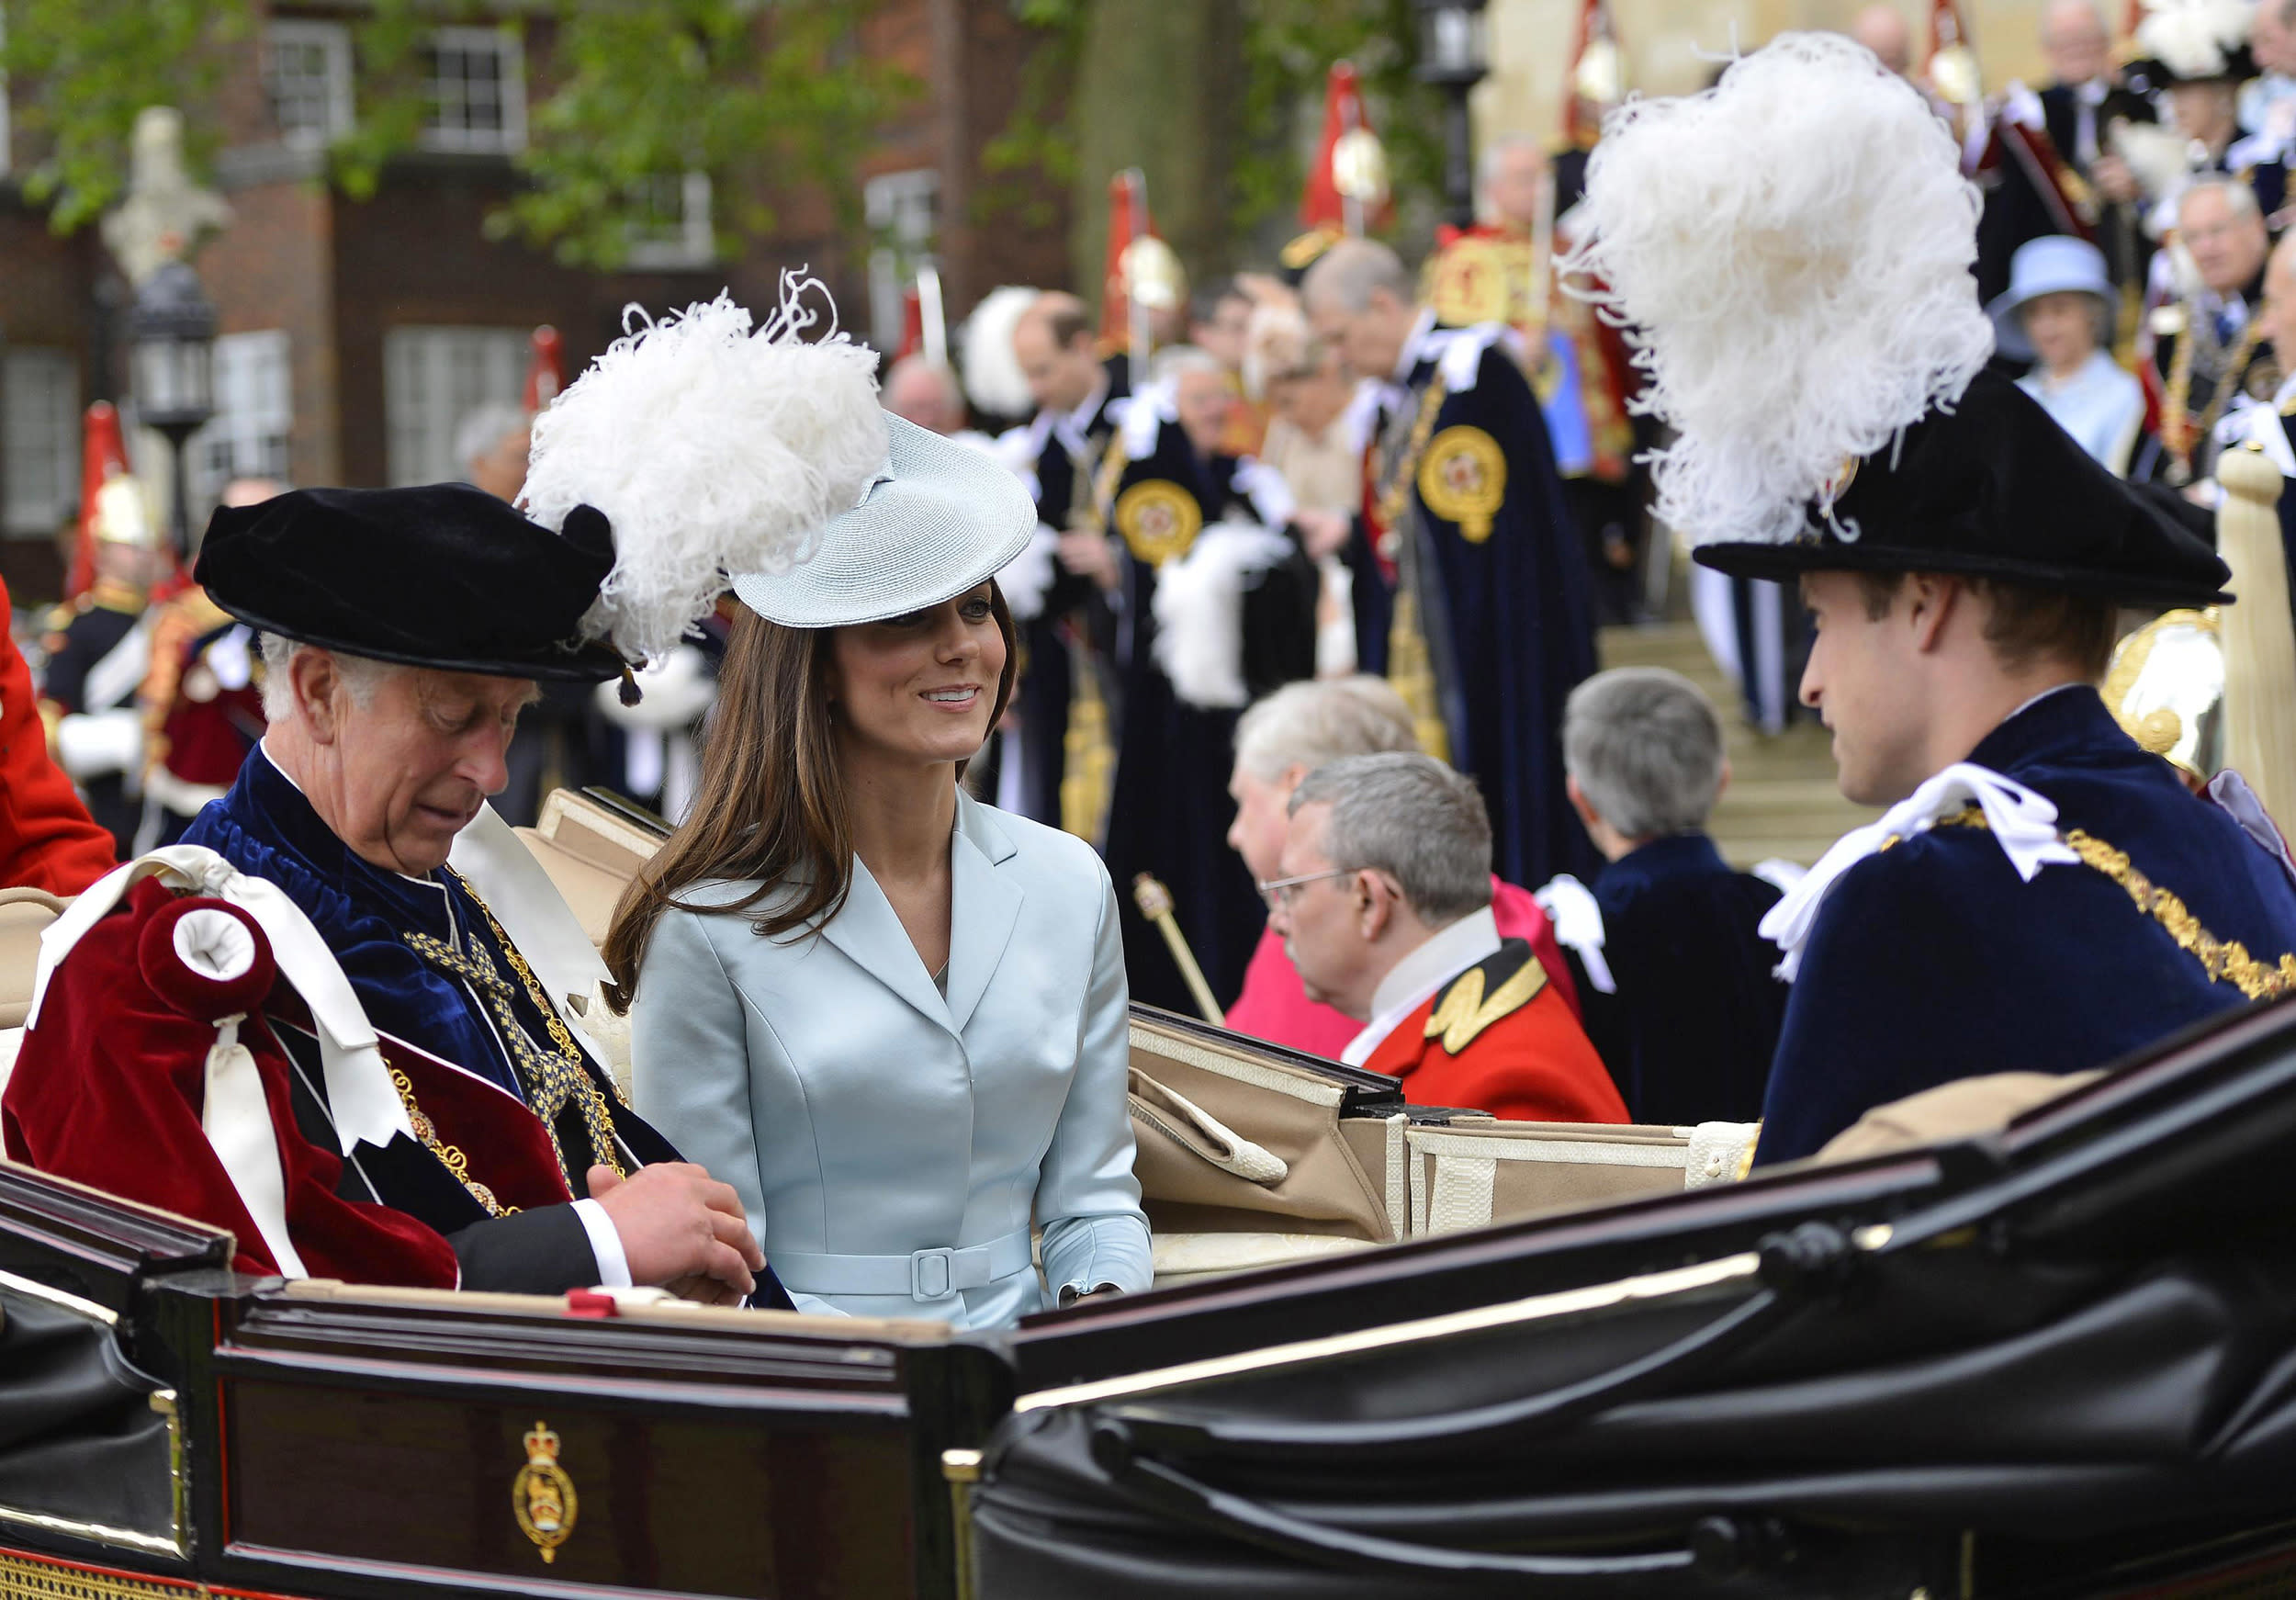 Duchess Kate attends Order of the Garter in a lovely pale blue Christopher Kane coat.